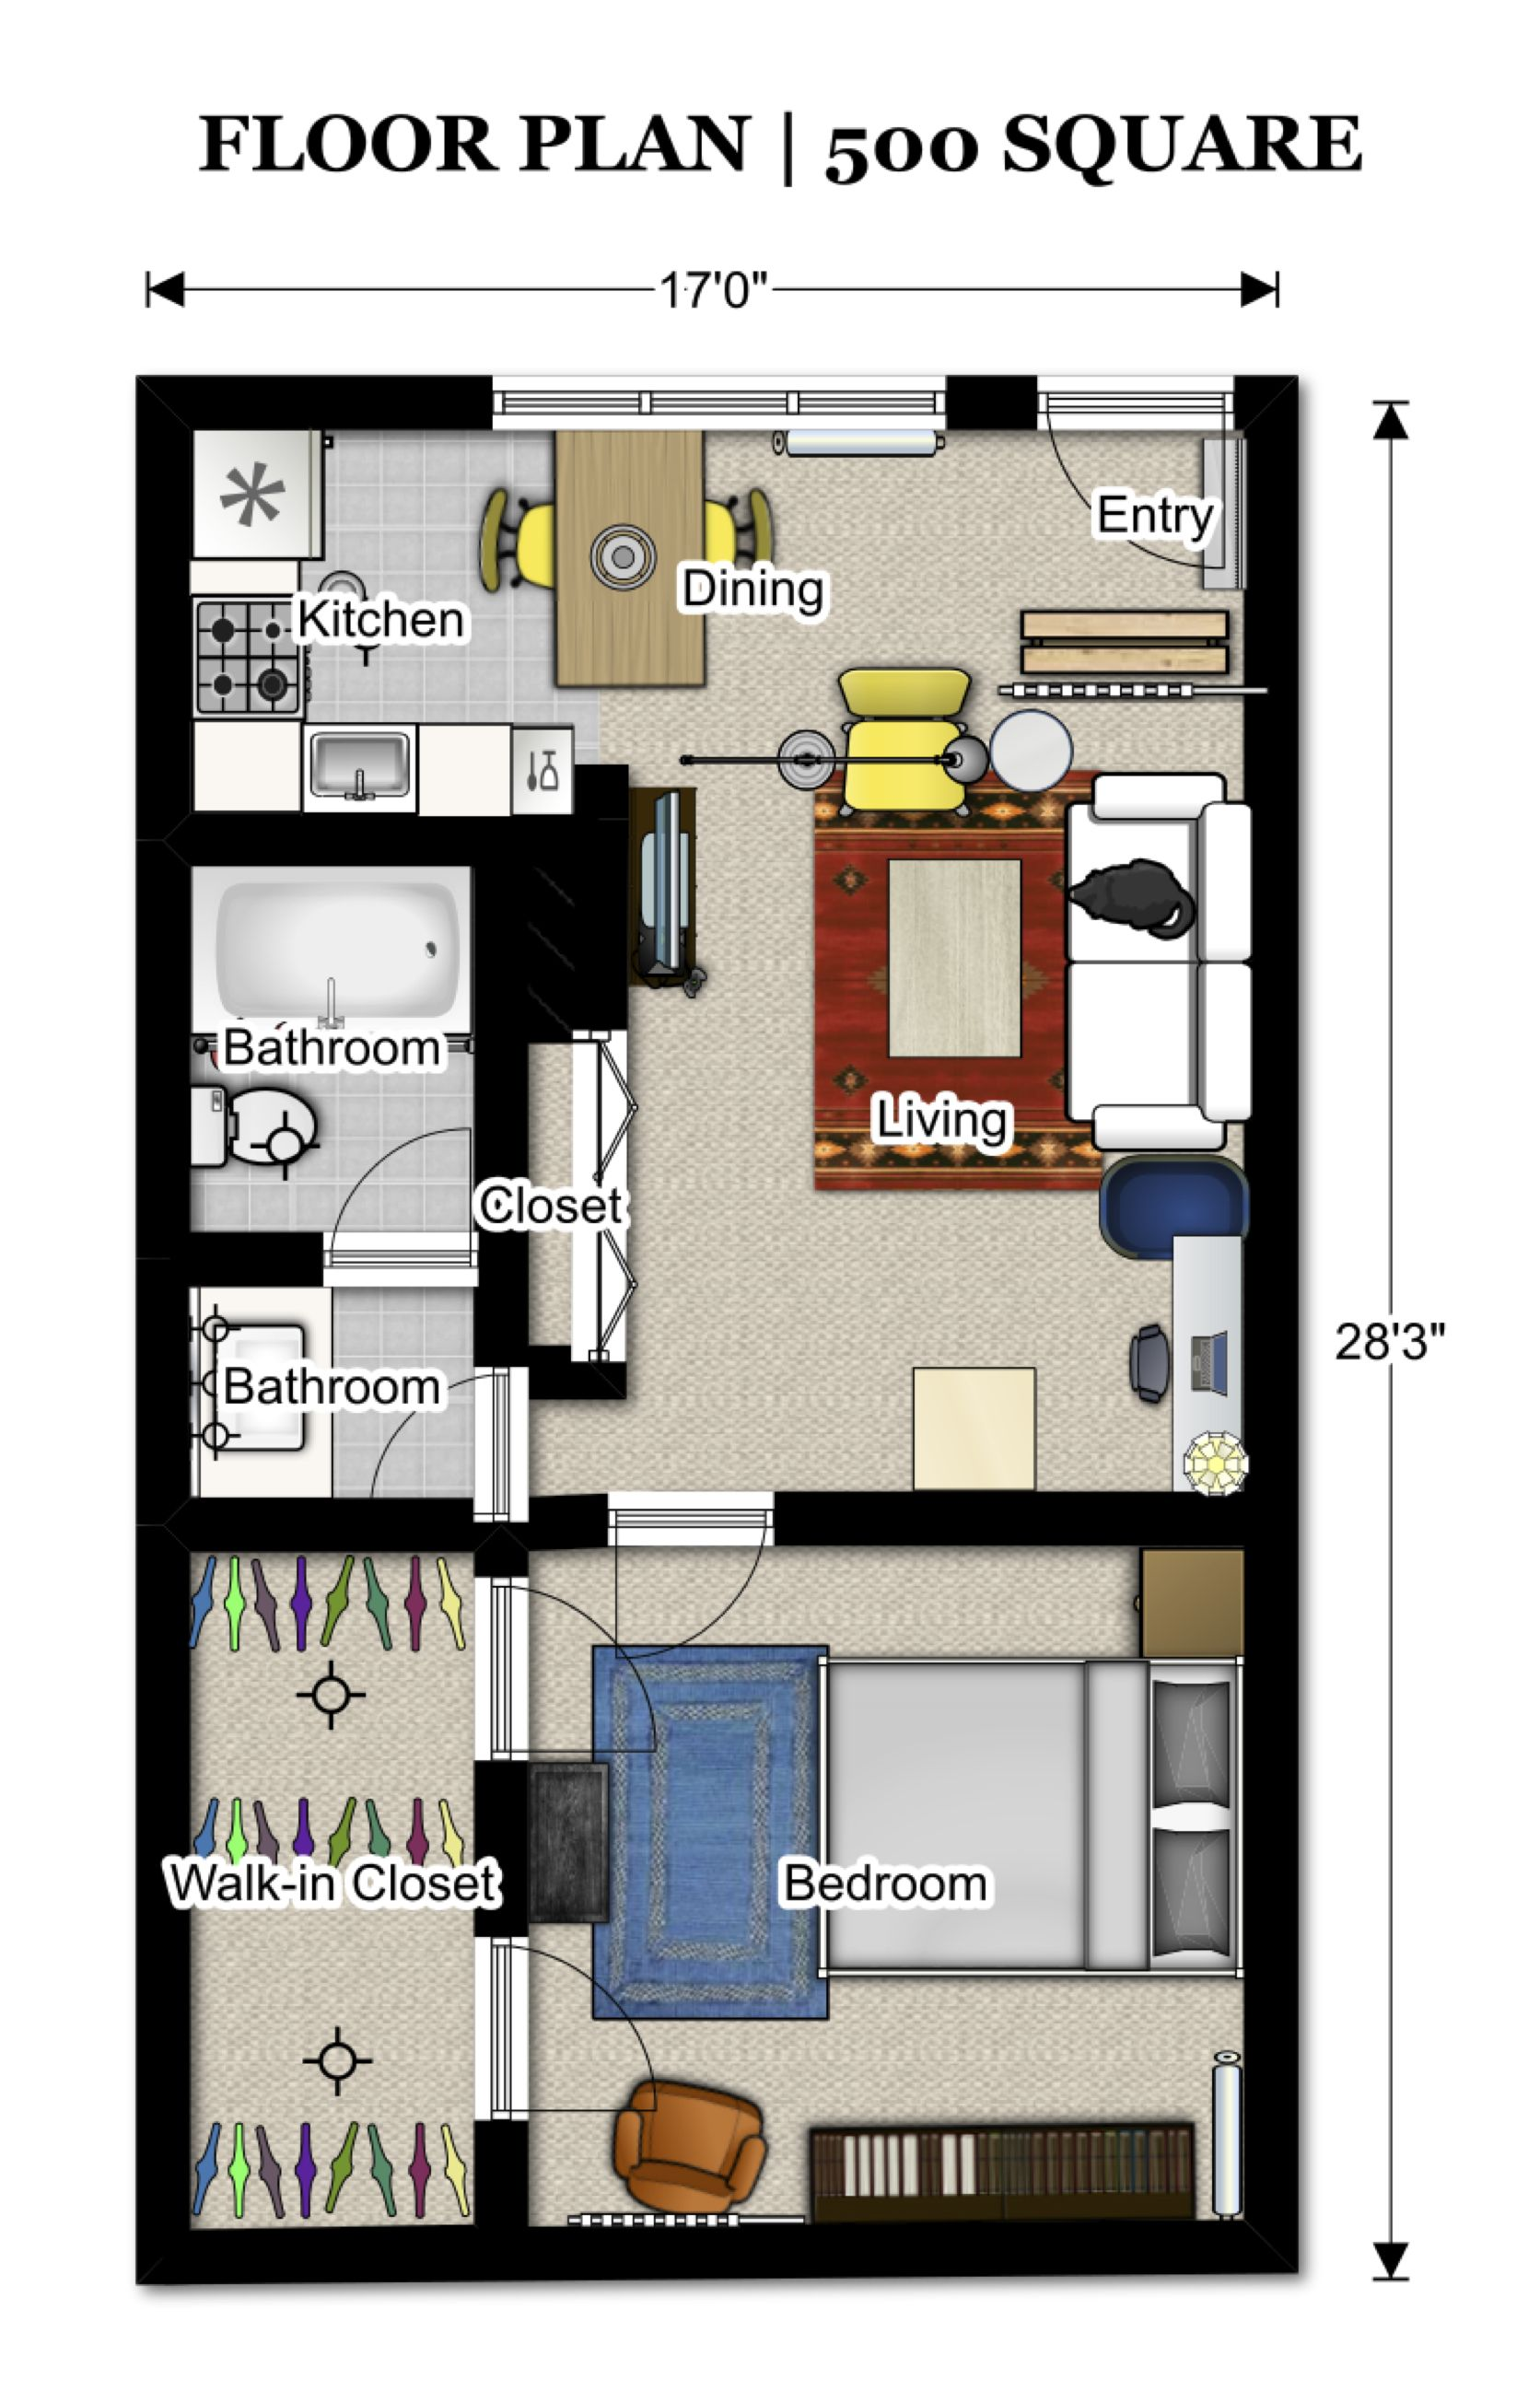 Floor plans 500 sq ft 352 3 pinterest apartment for Floor plans for 800 sq ft apartment